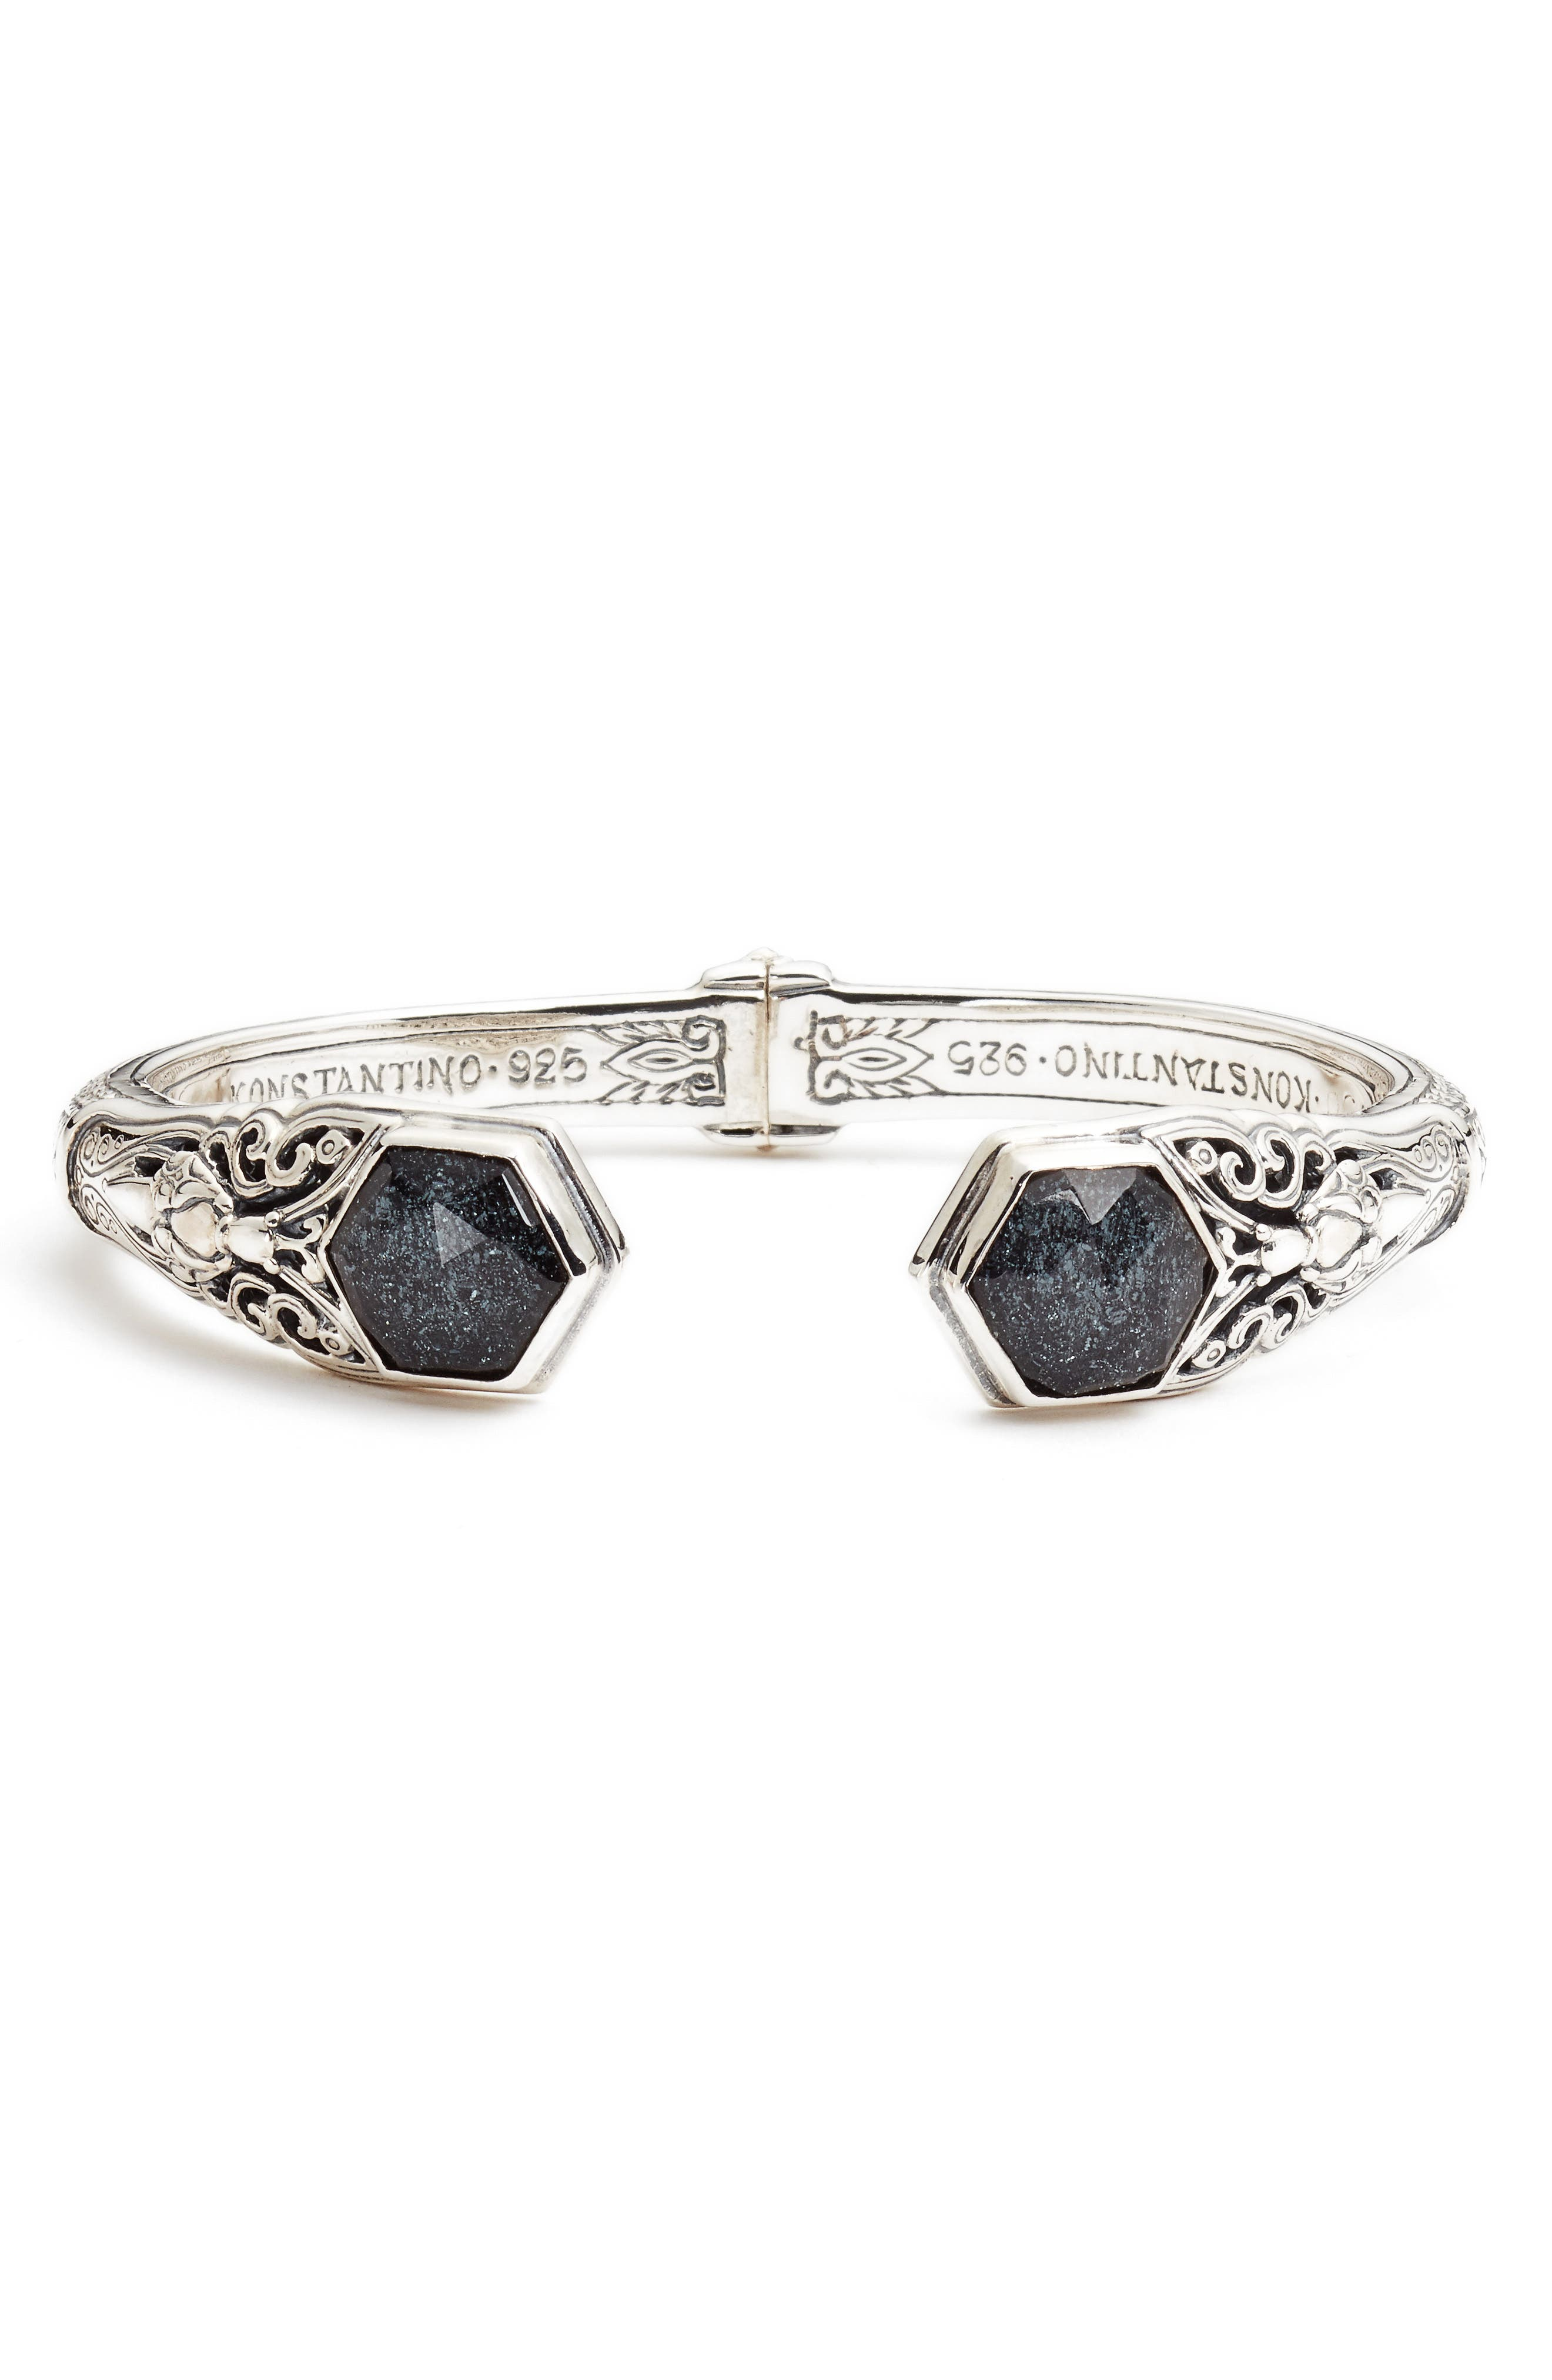 Alternate Image 1 Selected - Konstantino Santorini Hematite Cuff